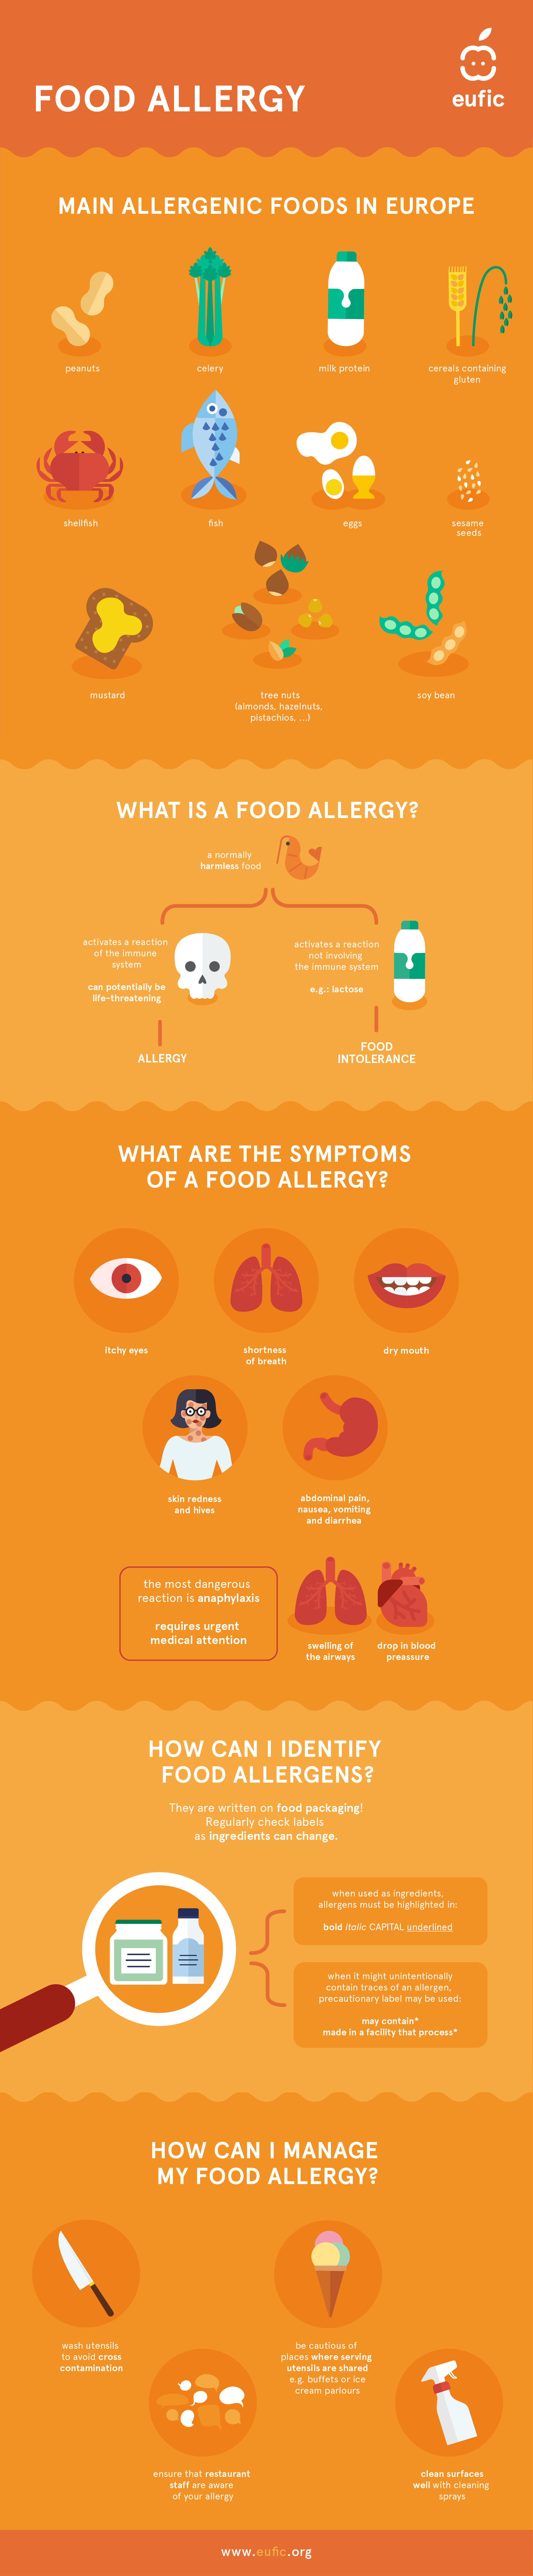 Infographic about food allergies and how to manage them